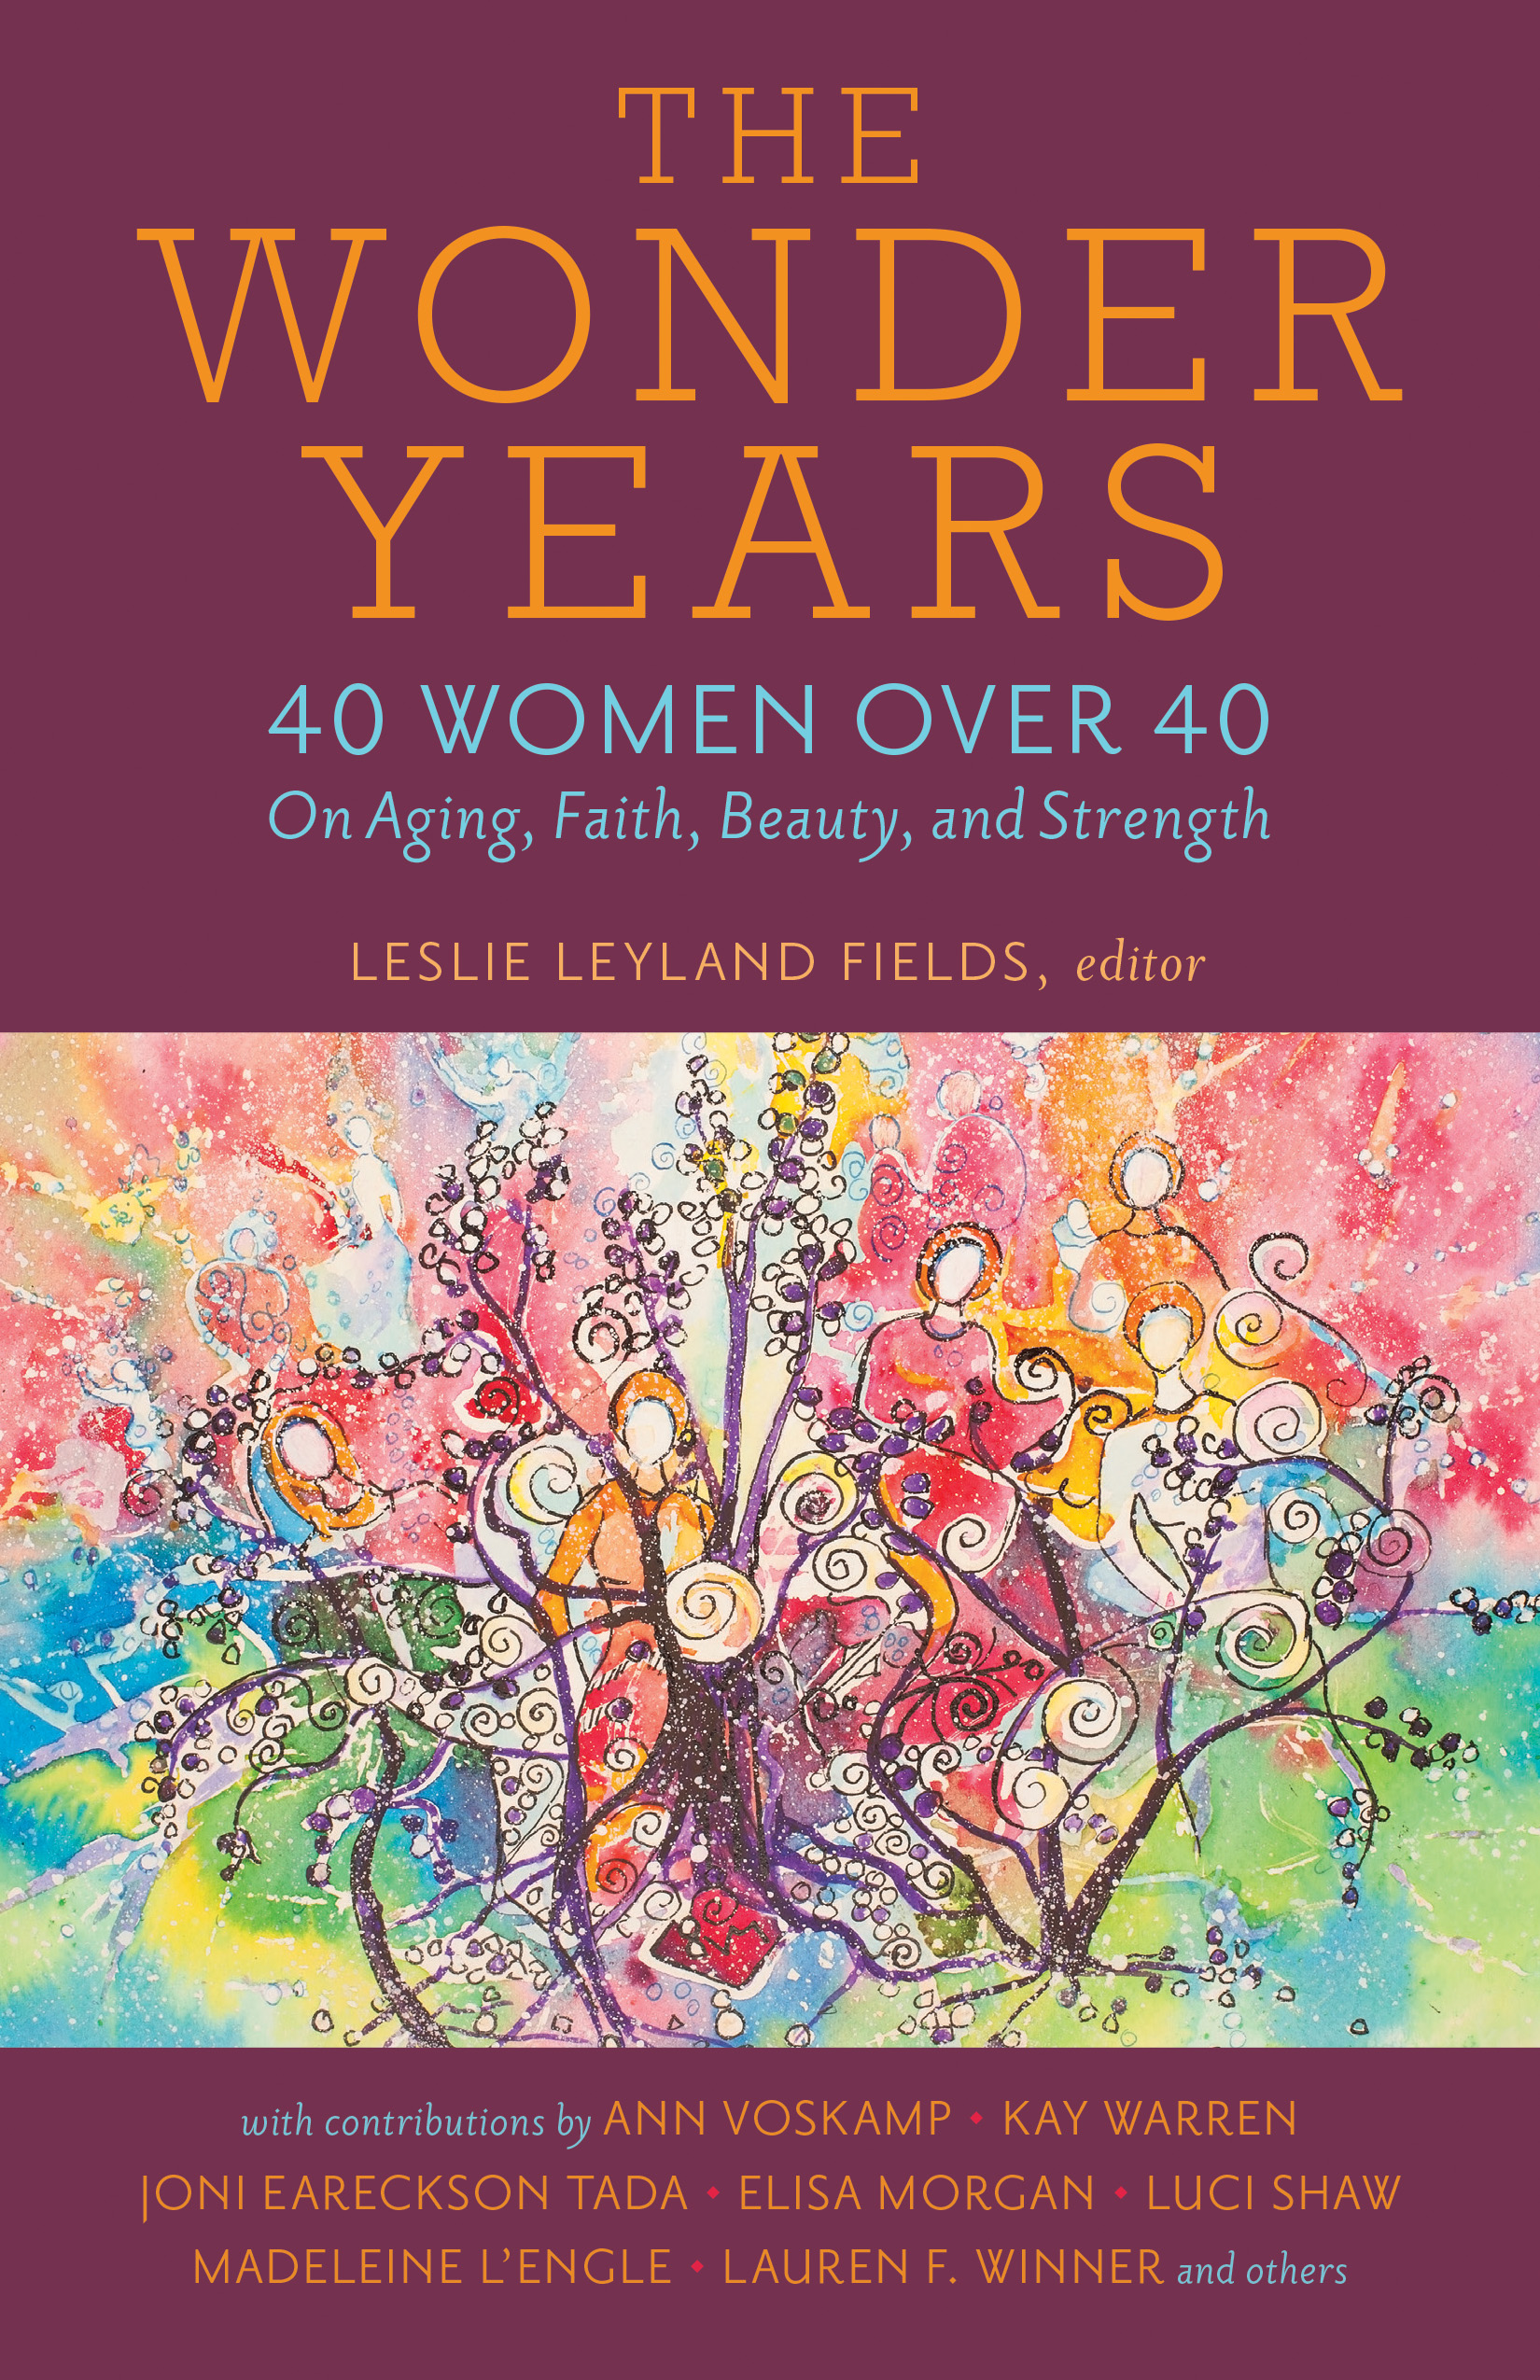 The Wonder Years by Leslie Leyland Fields